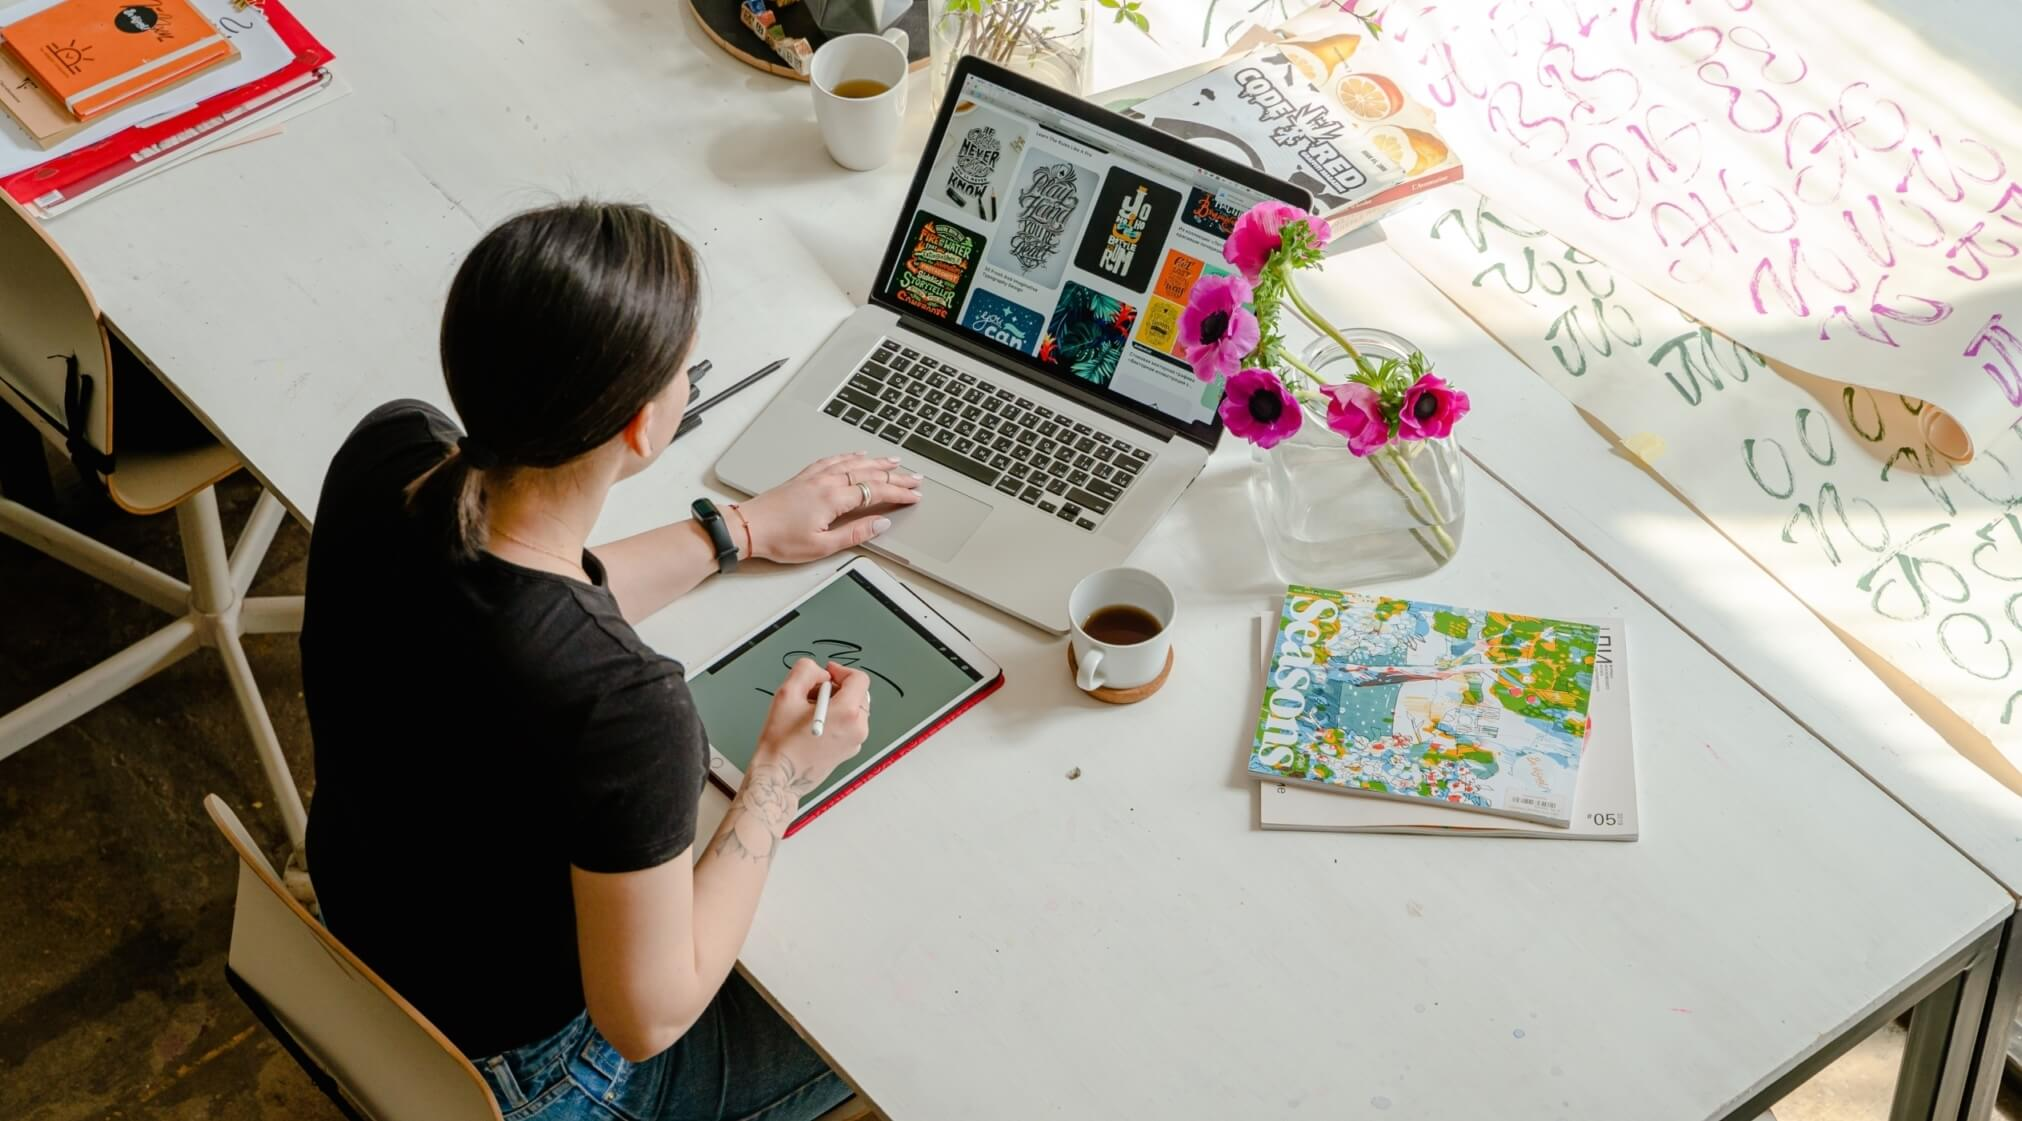 woman working on laptop and ipad